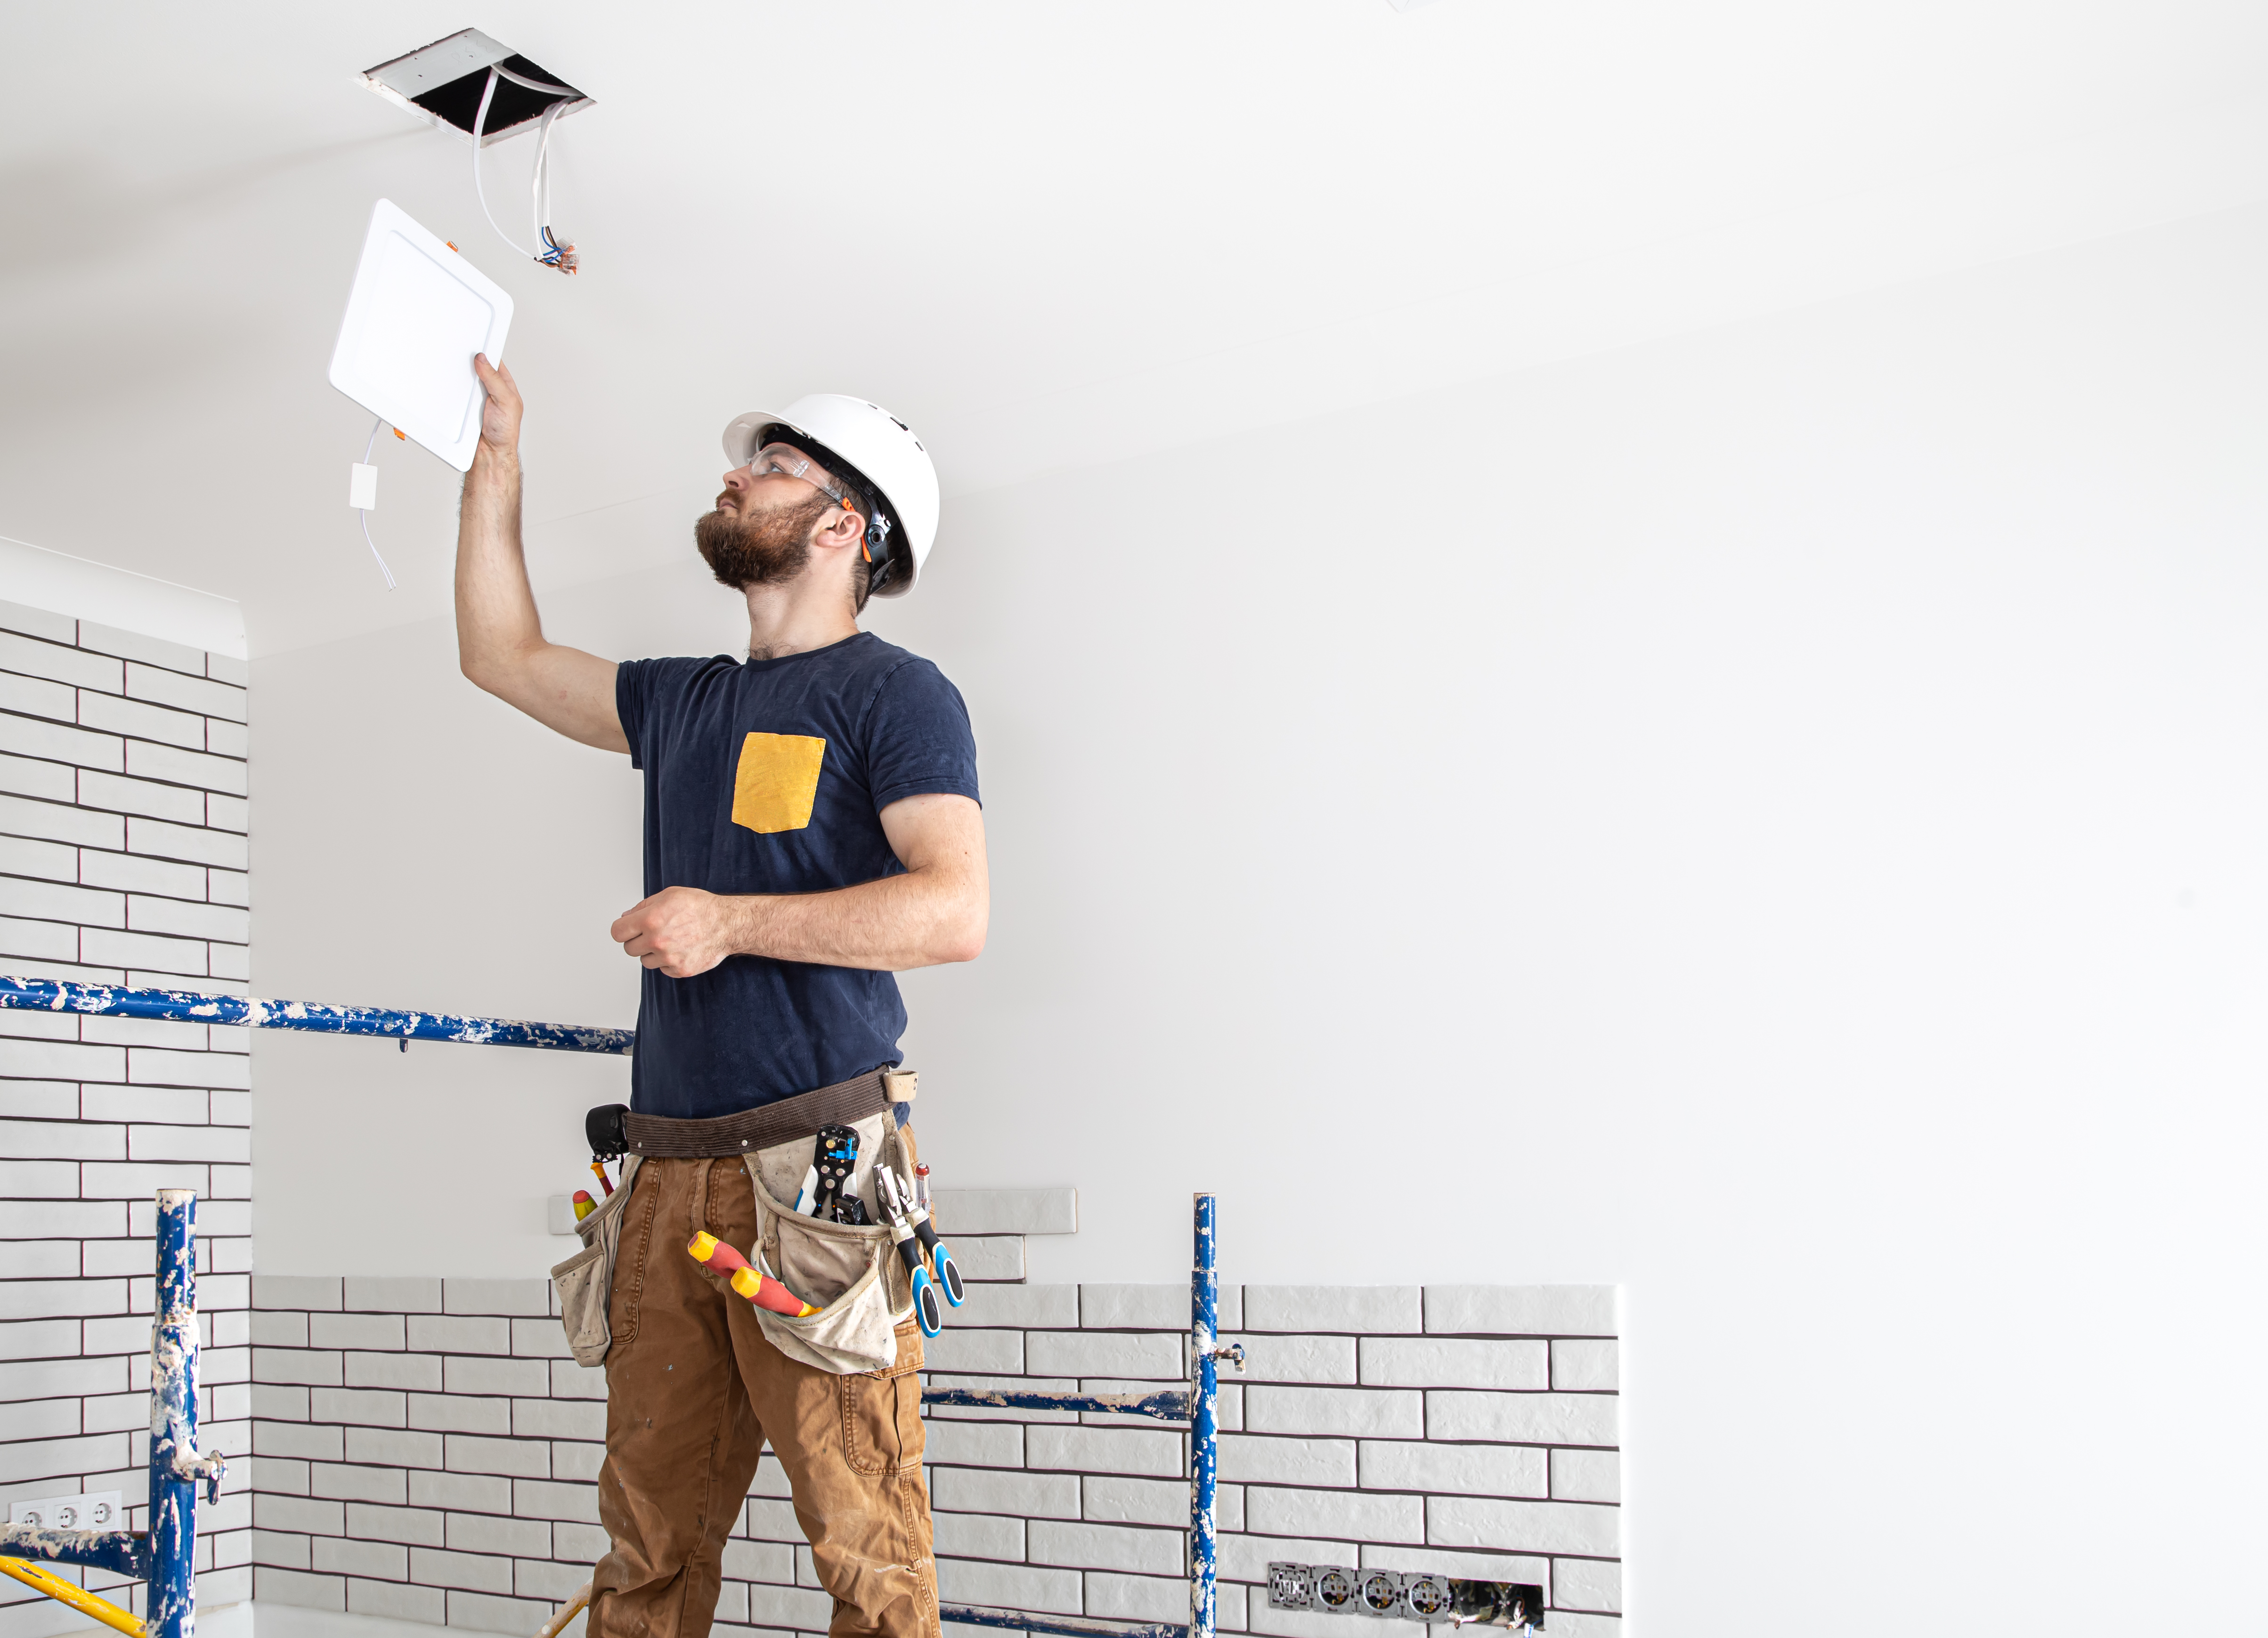 Electrician,builder,at,work,,installation,of,lamps,at,height.,professional